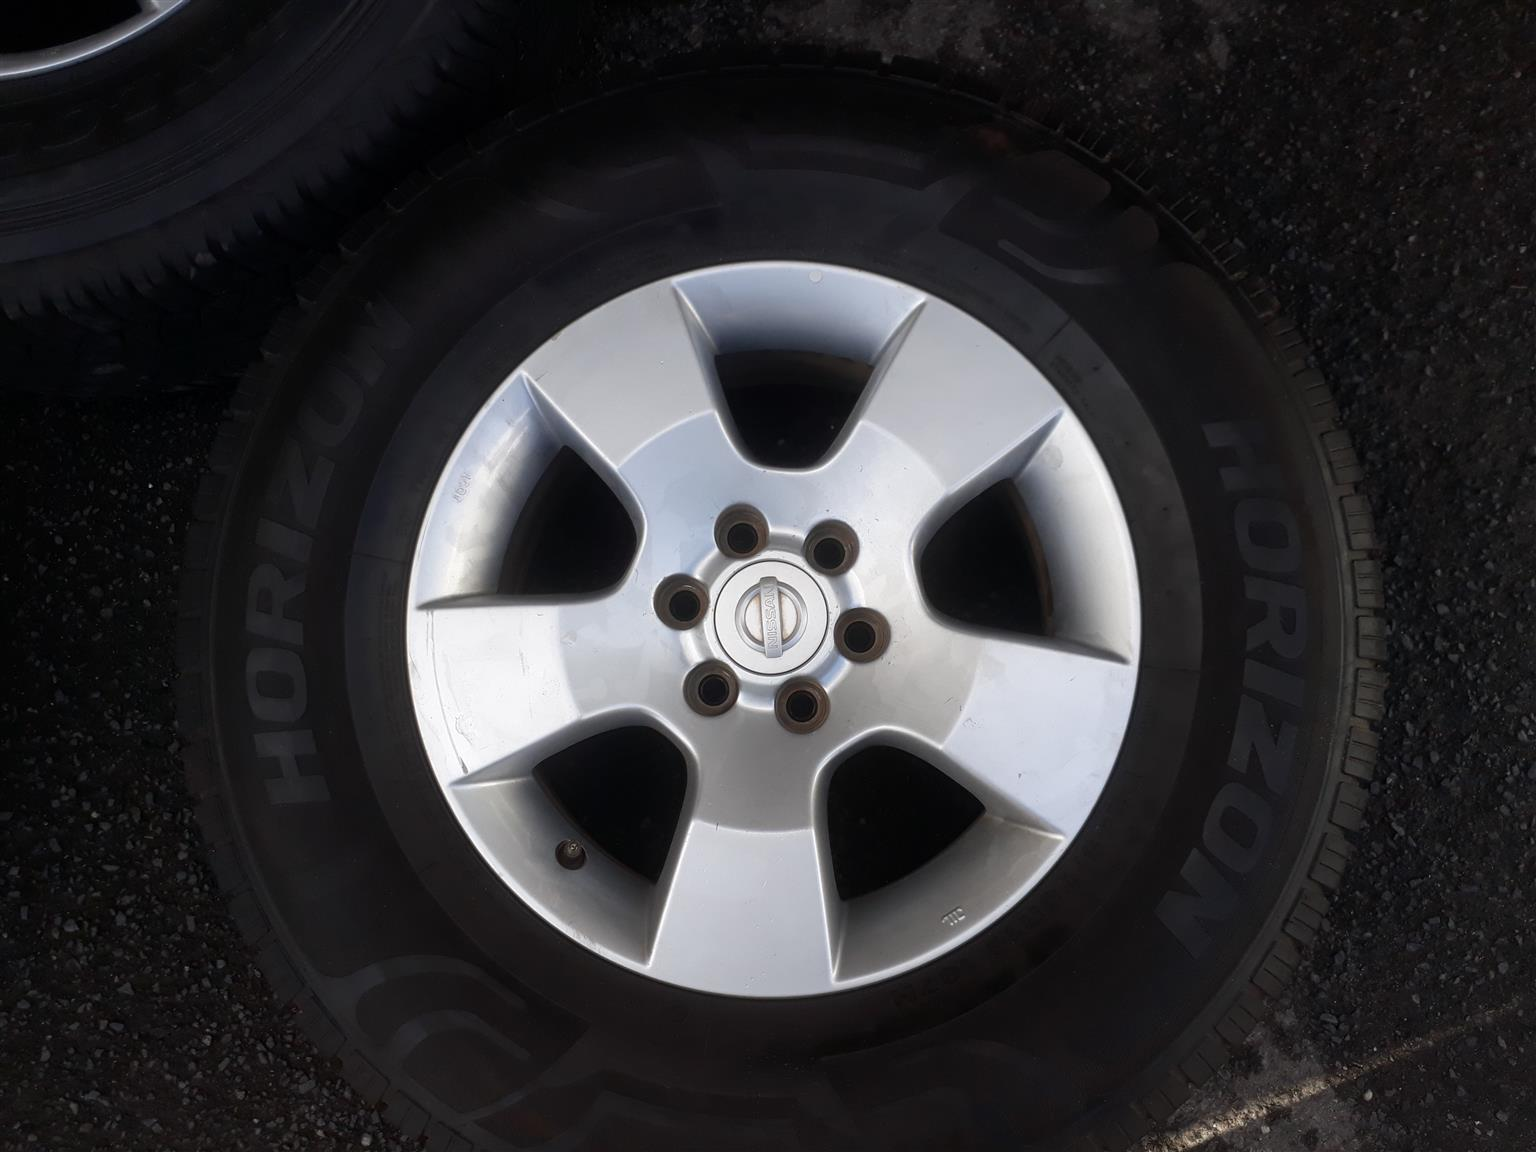 Nissan Navara 16 inch Mag wheel and tyre, two left for sale!! Price negotiable!! Extra for free when buying the two mags will be a steel rim c/w tyre and an extra tyre.